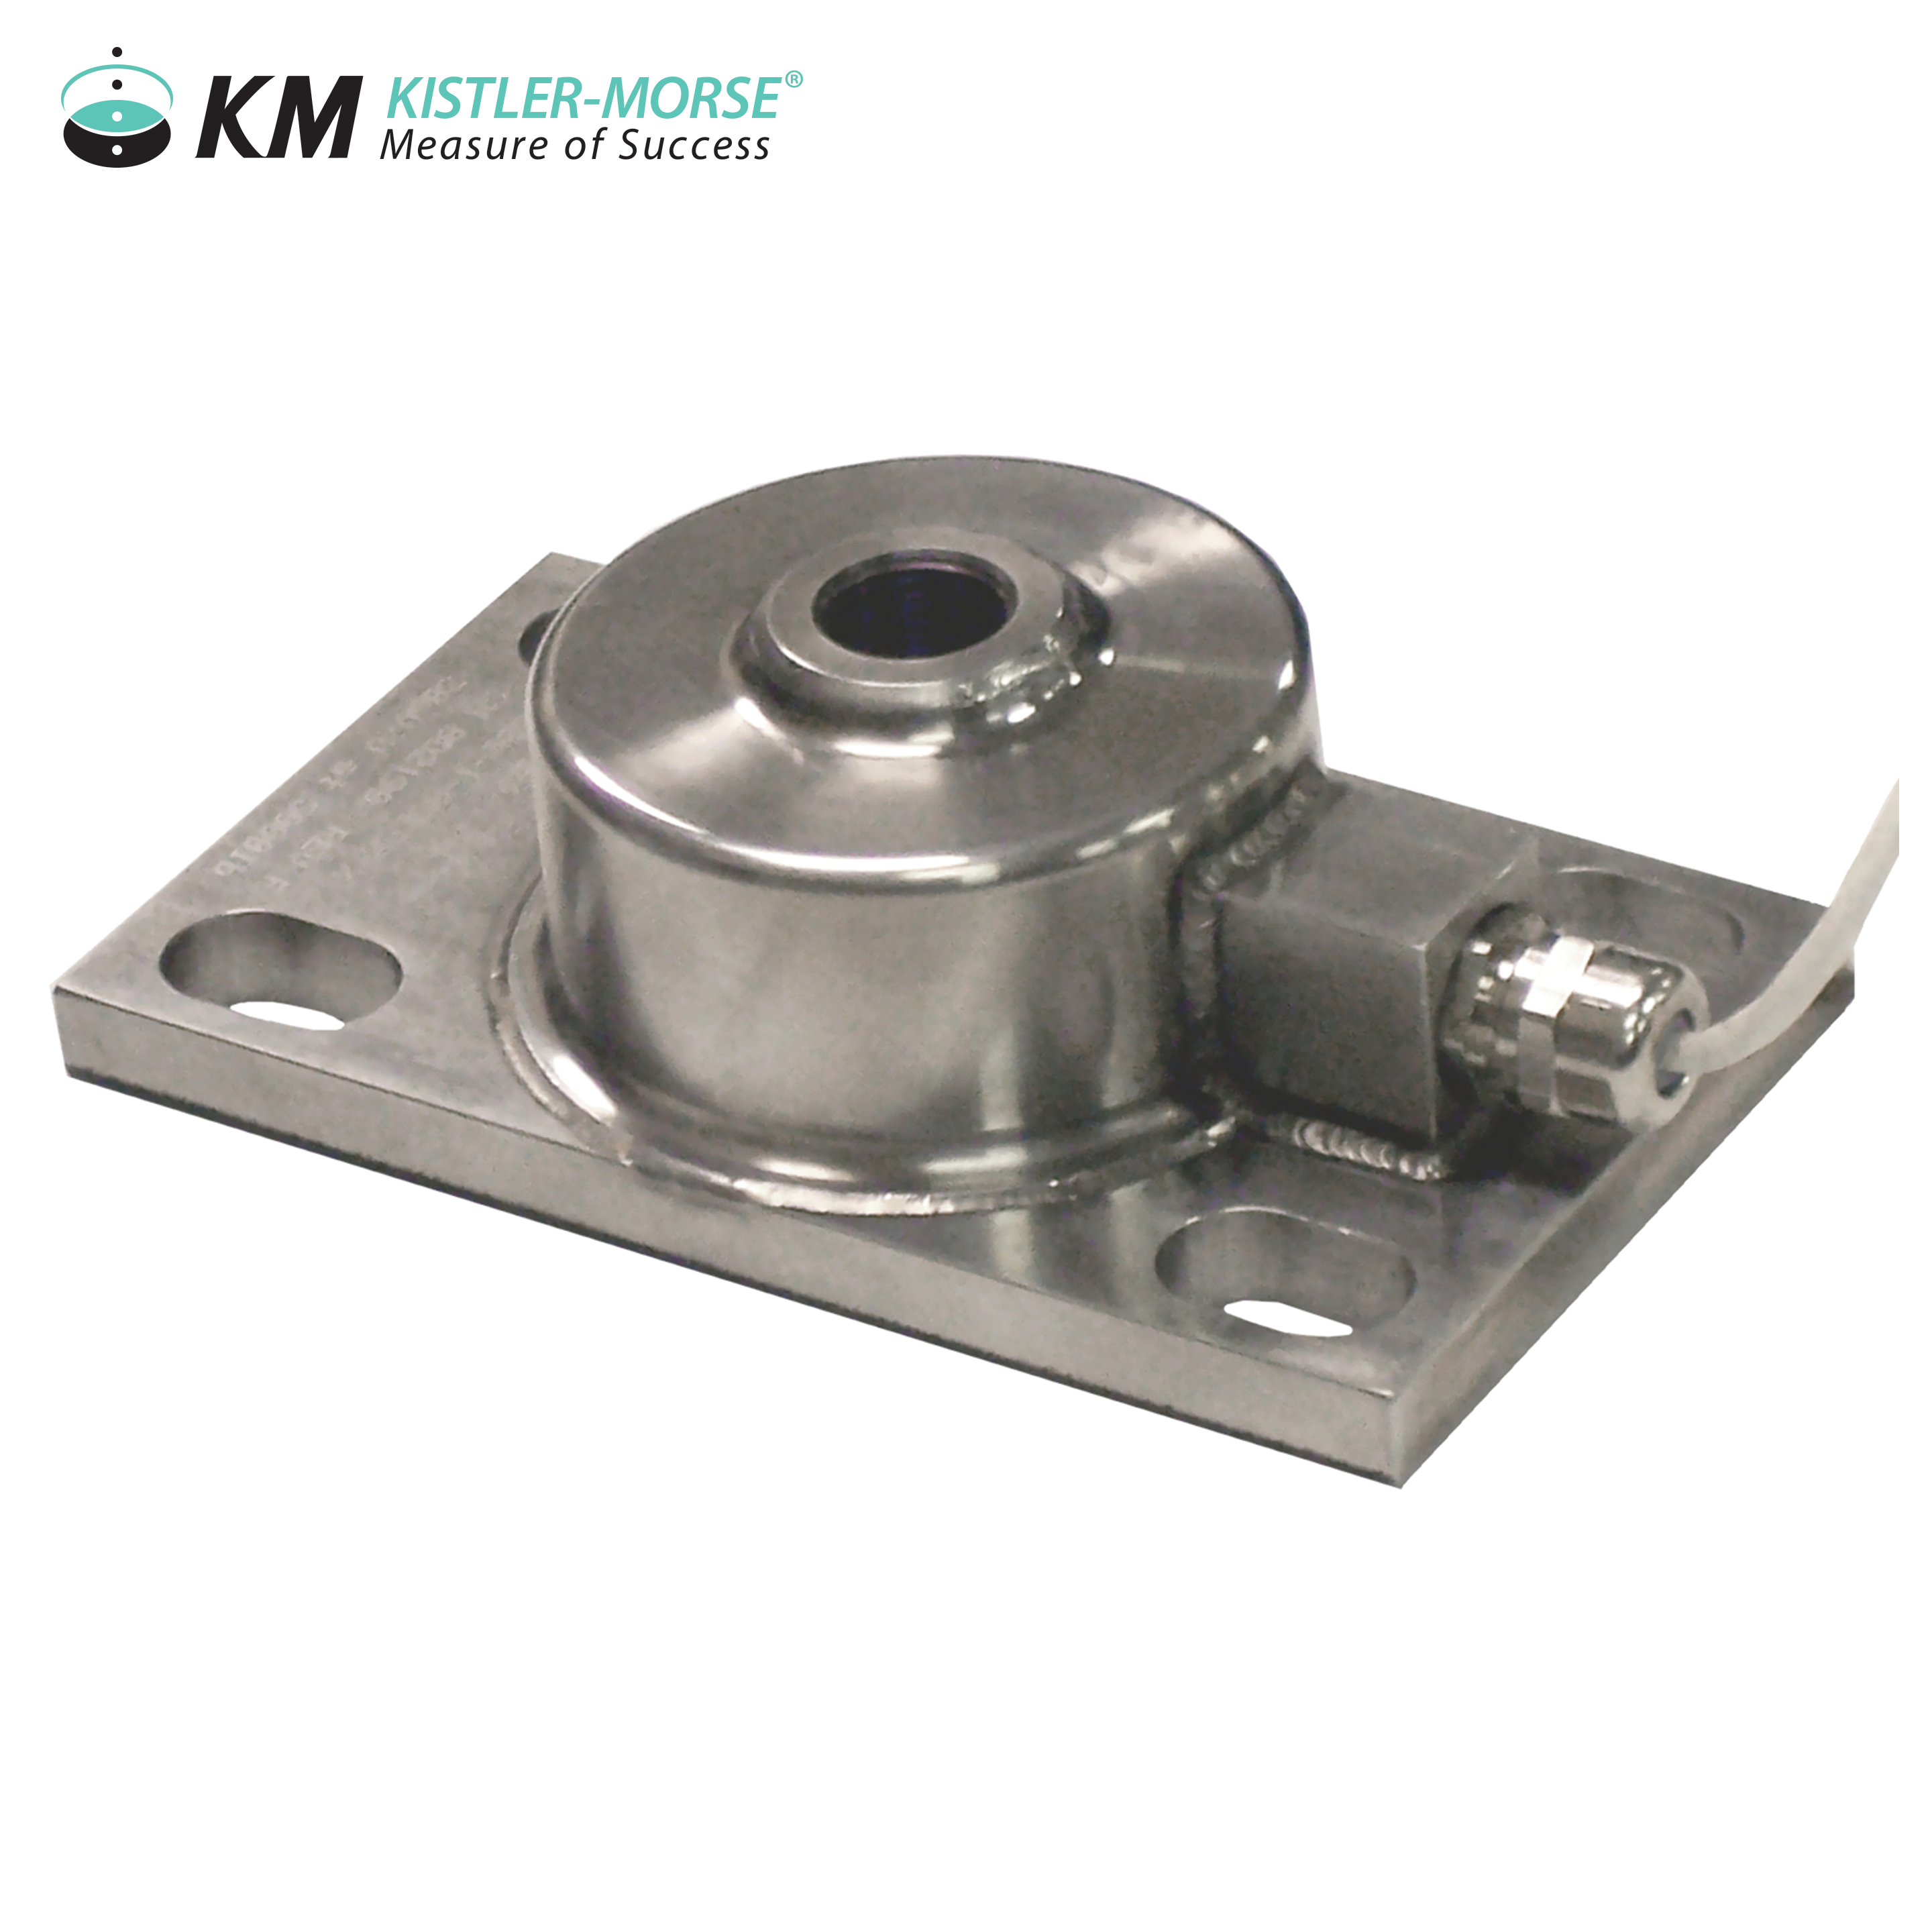 LD3™ Compression Load Cell